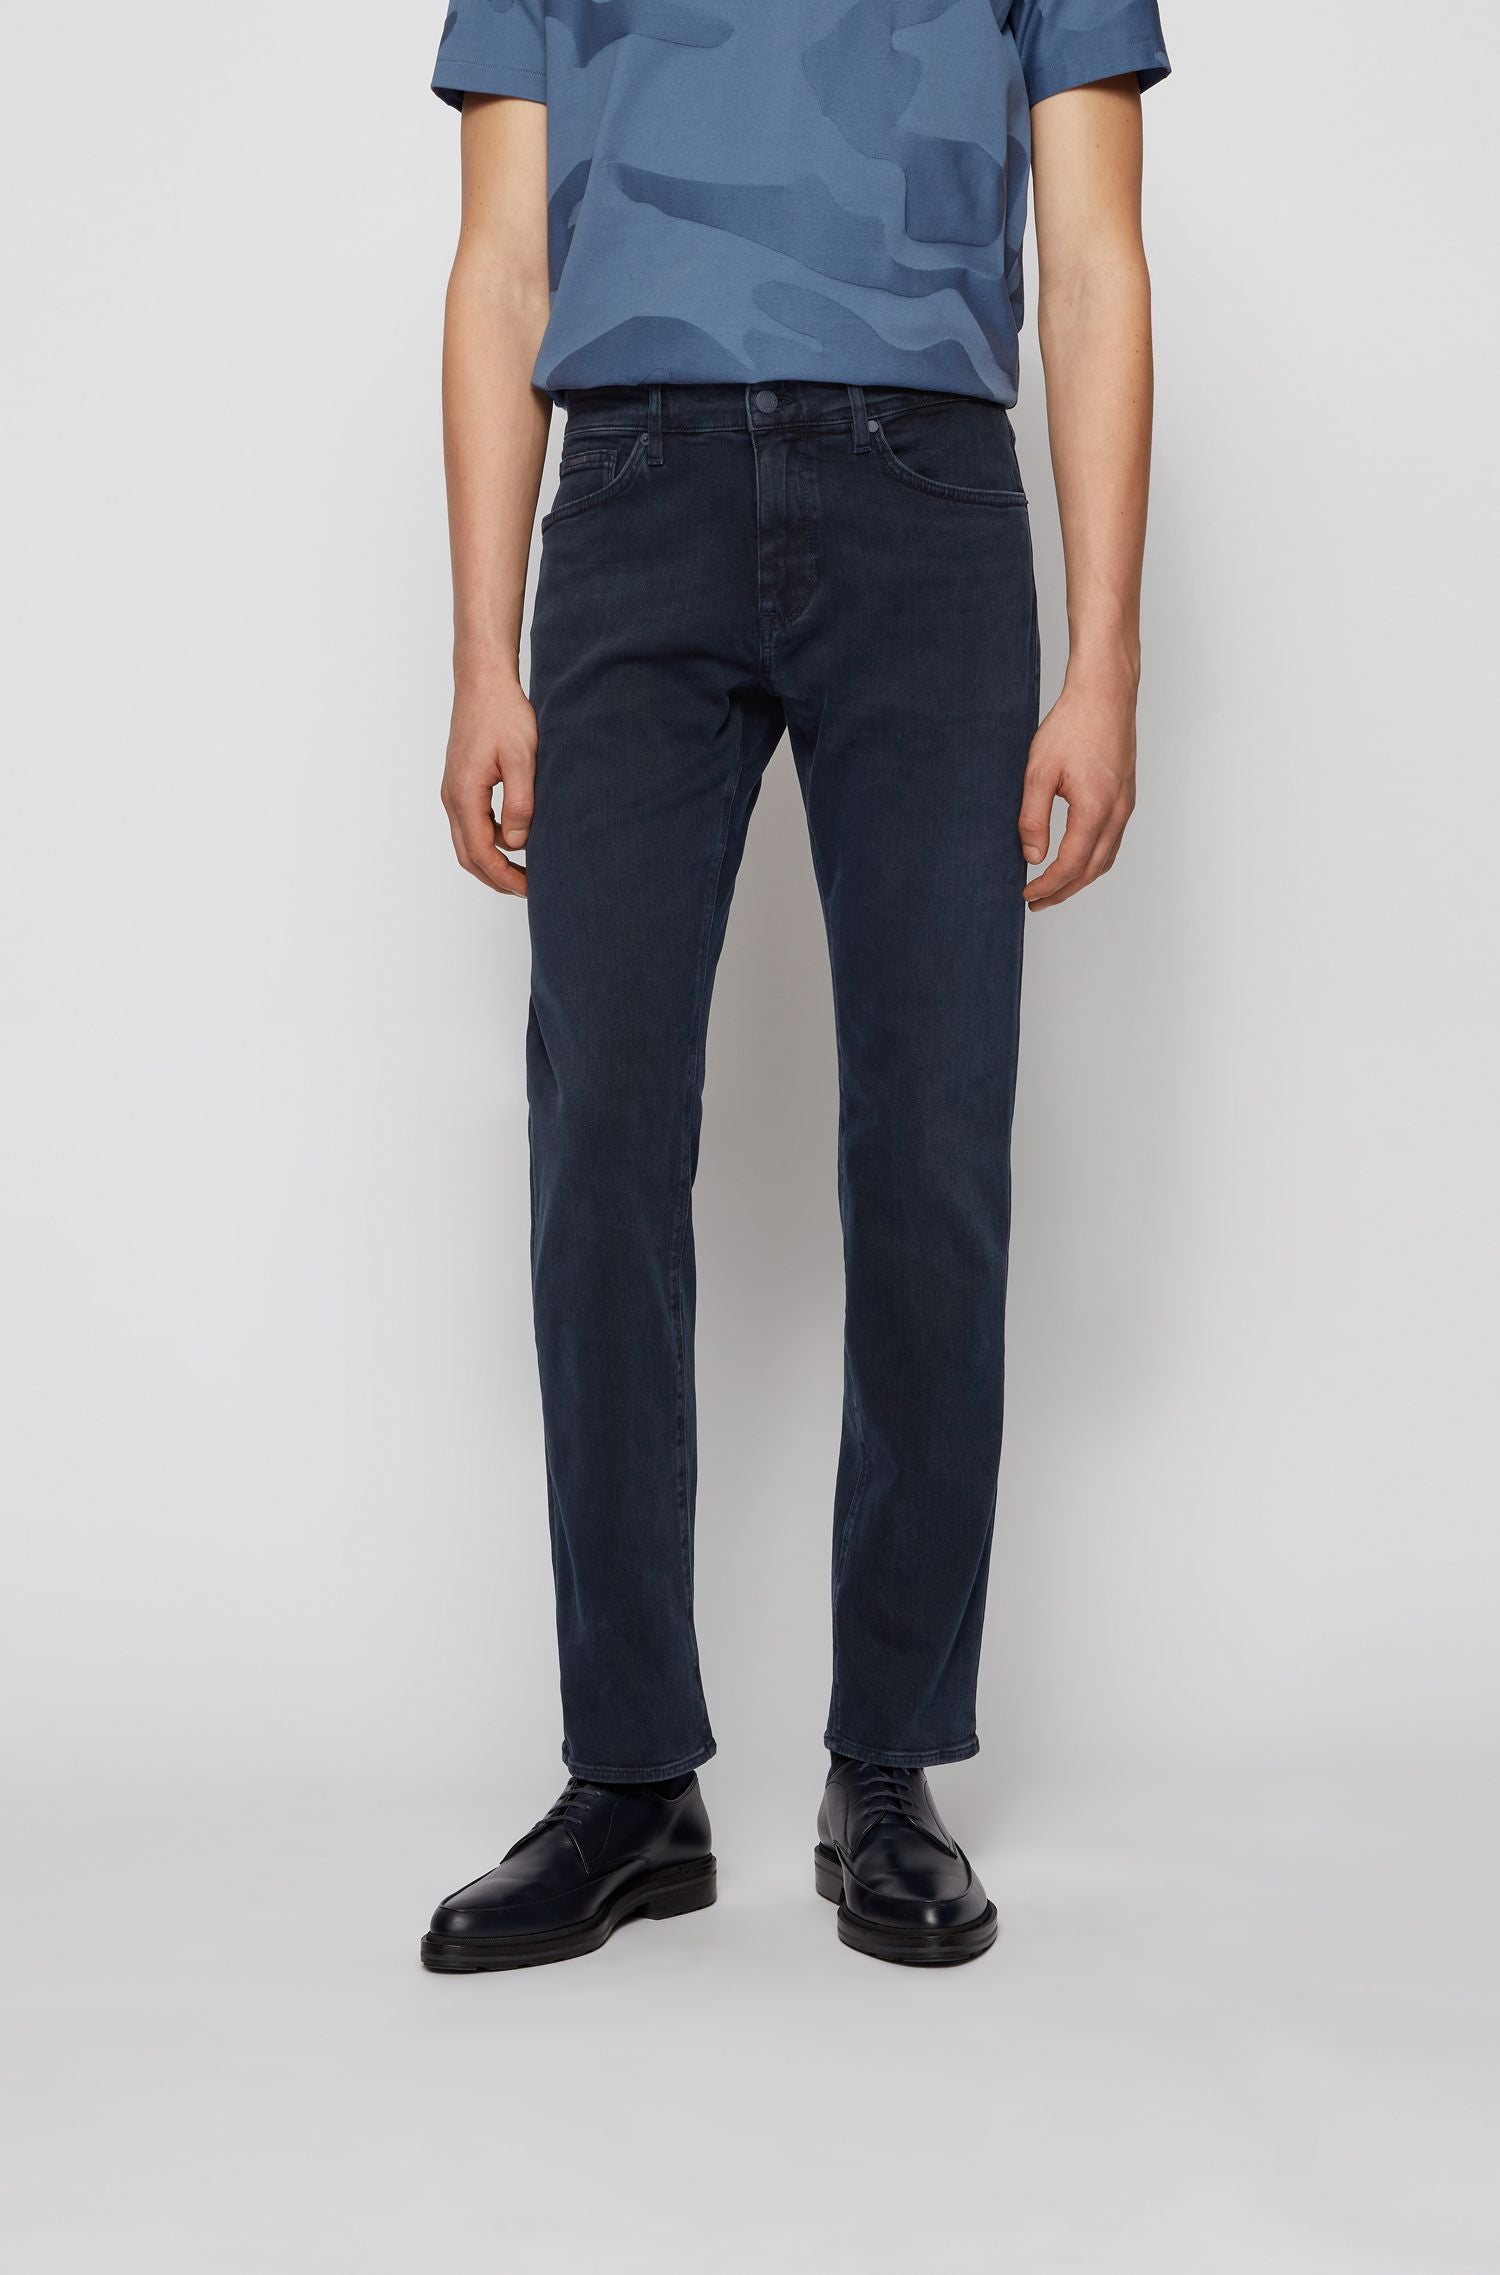 Hugo Boss Maine Jeans - Dark Denim